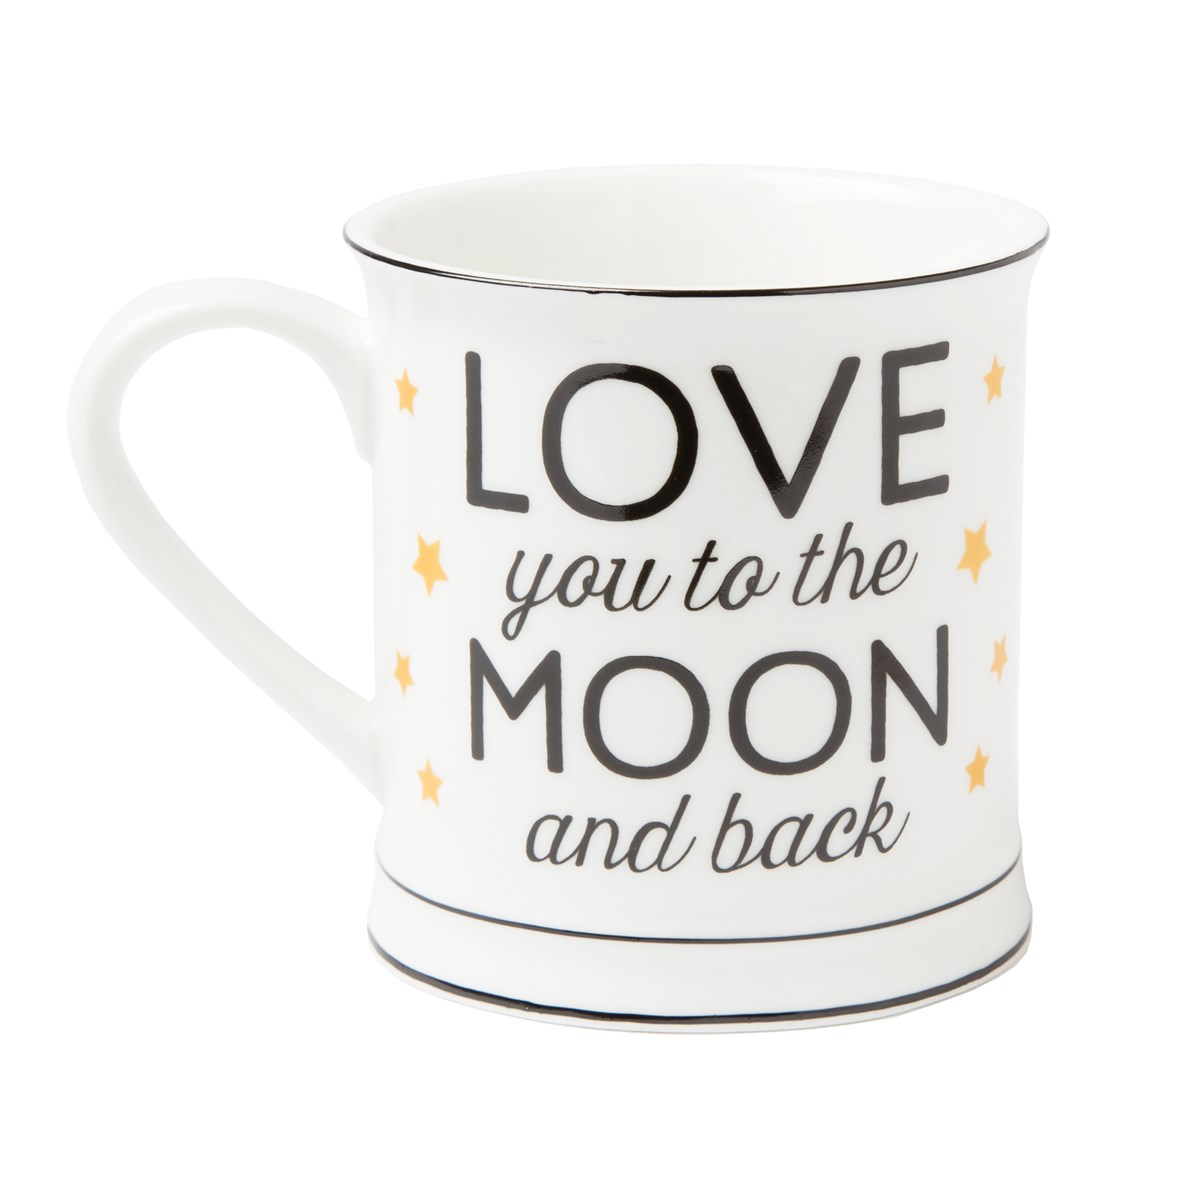 "Mugg """"Love you to the moon and back"""""